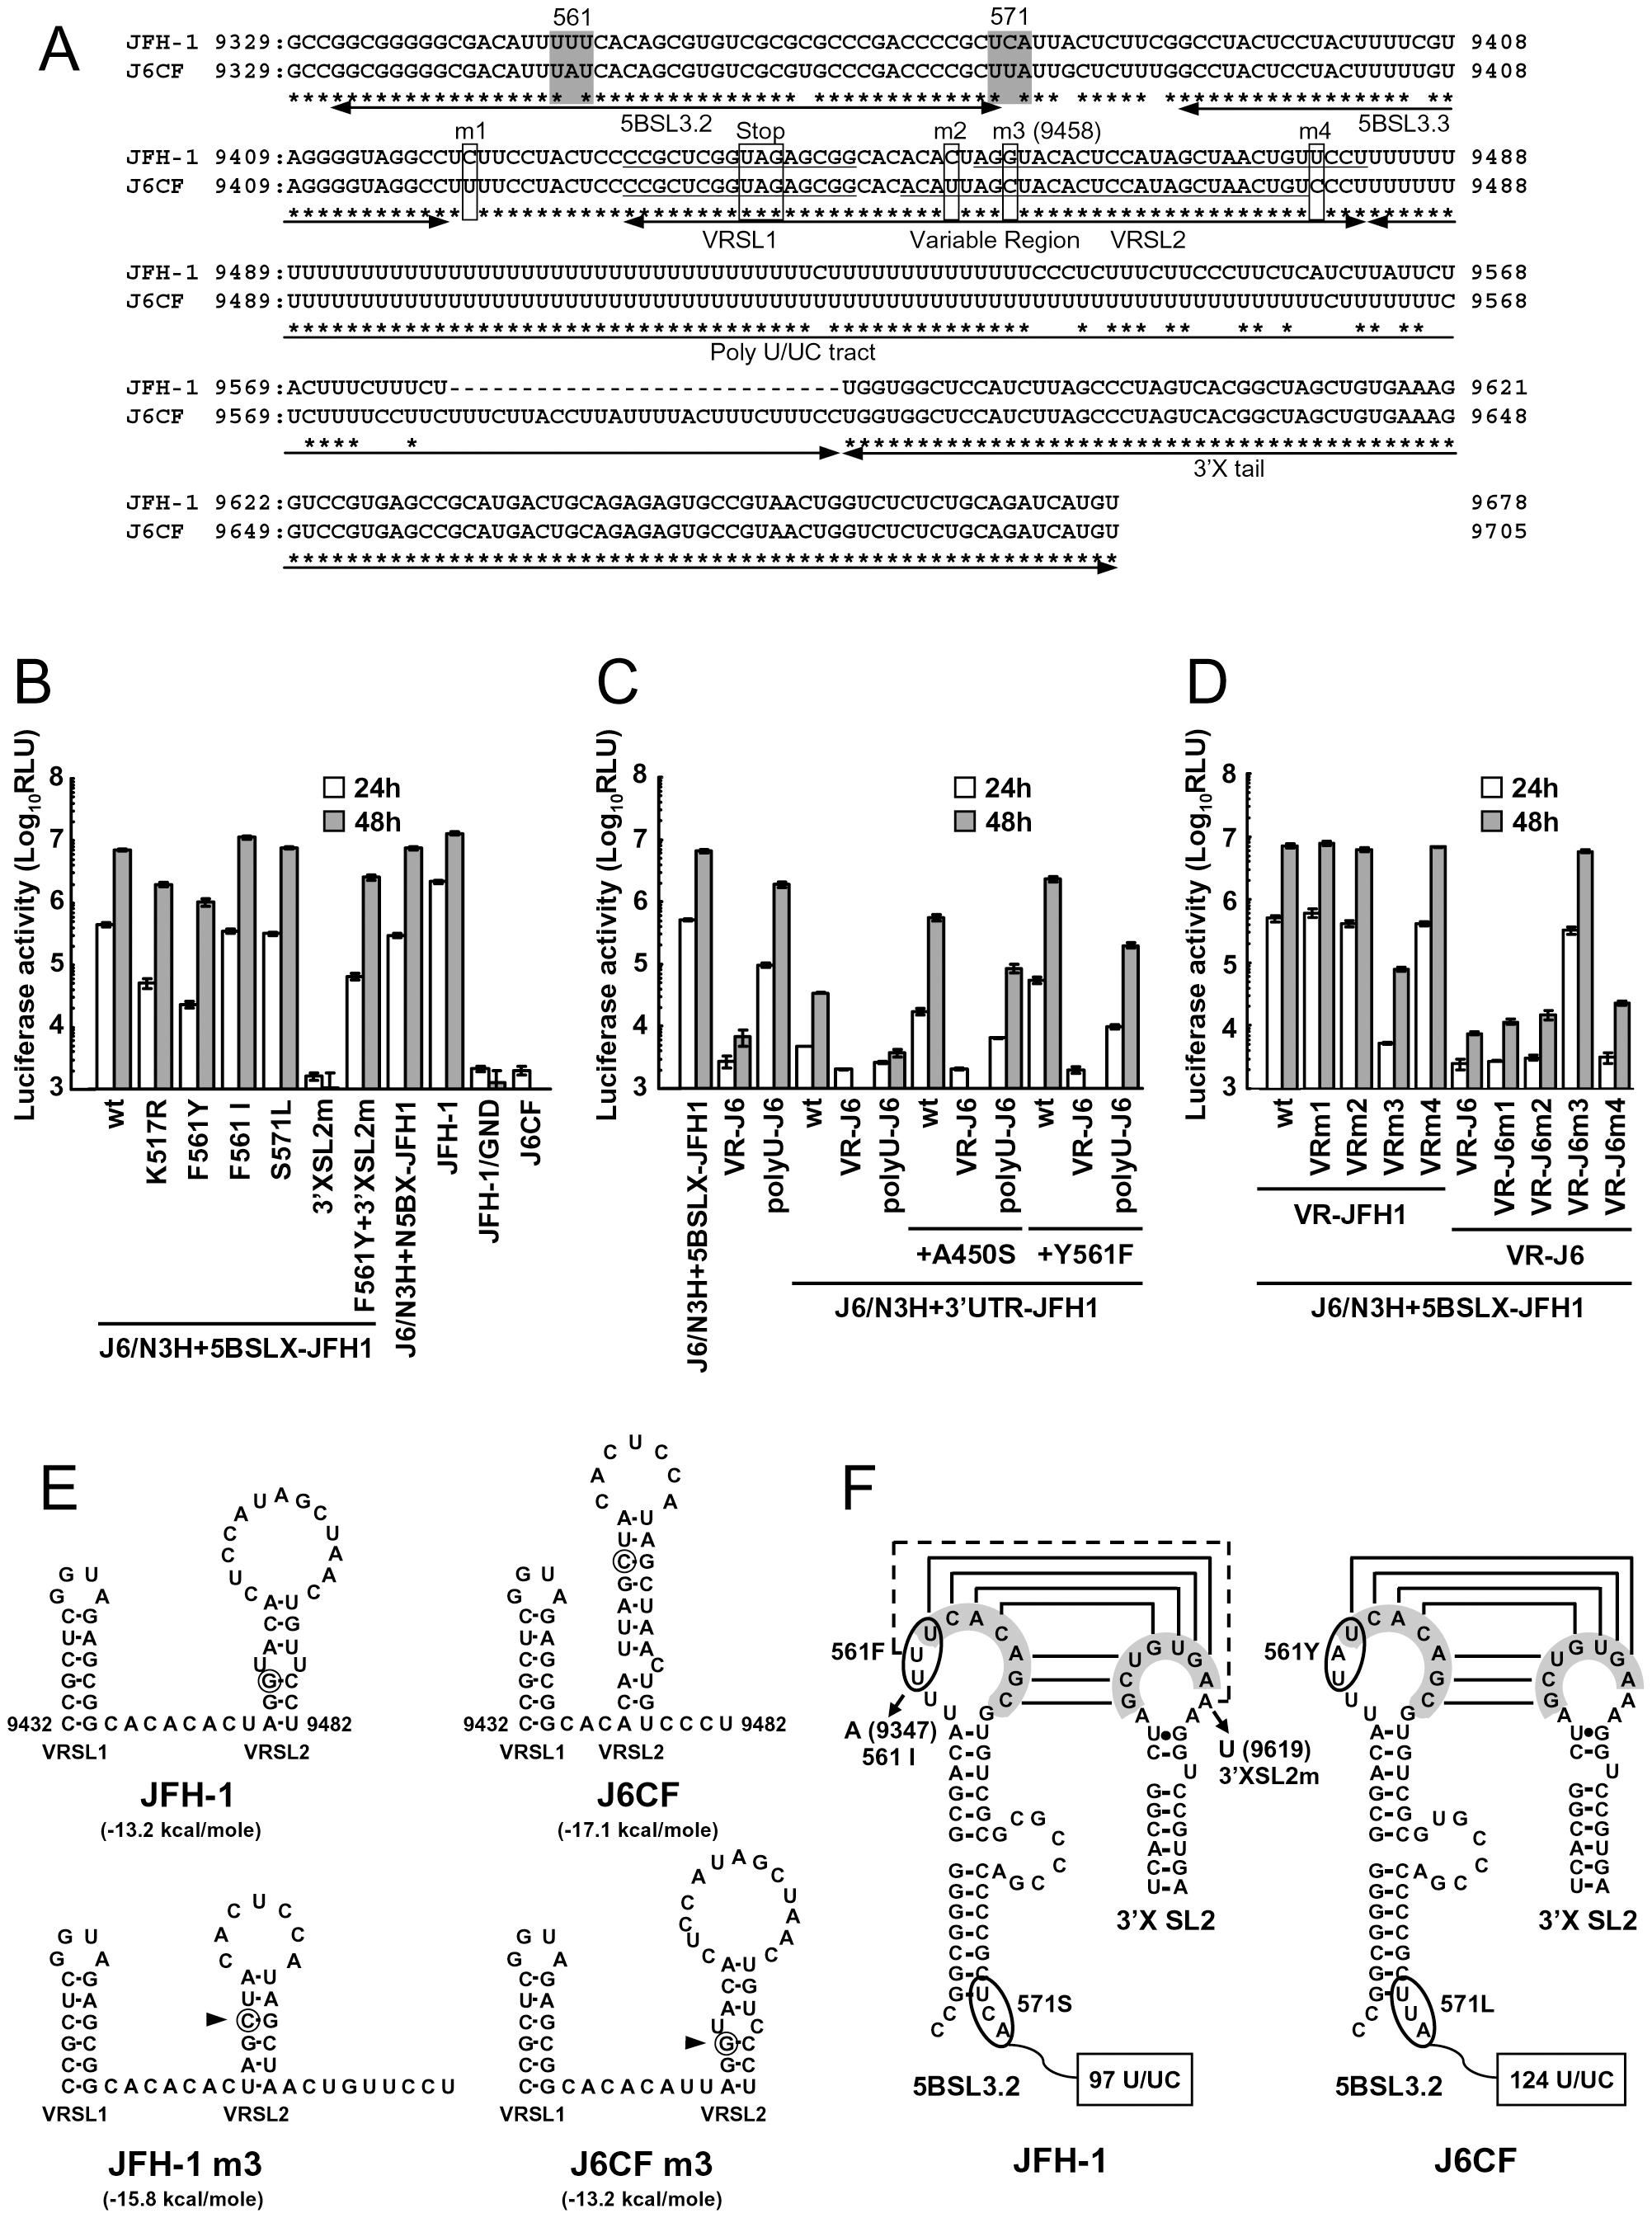 Replication activity of J6CF-based replicons containing variants or substitutions.